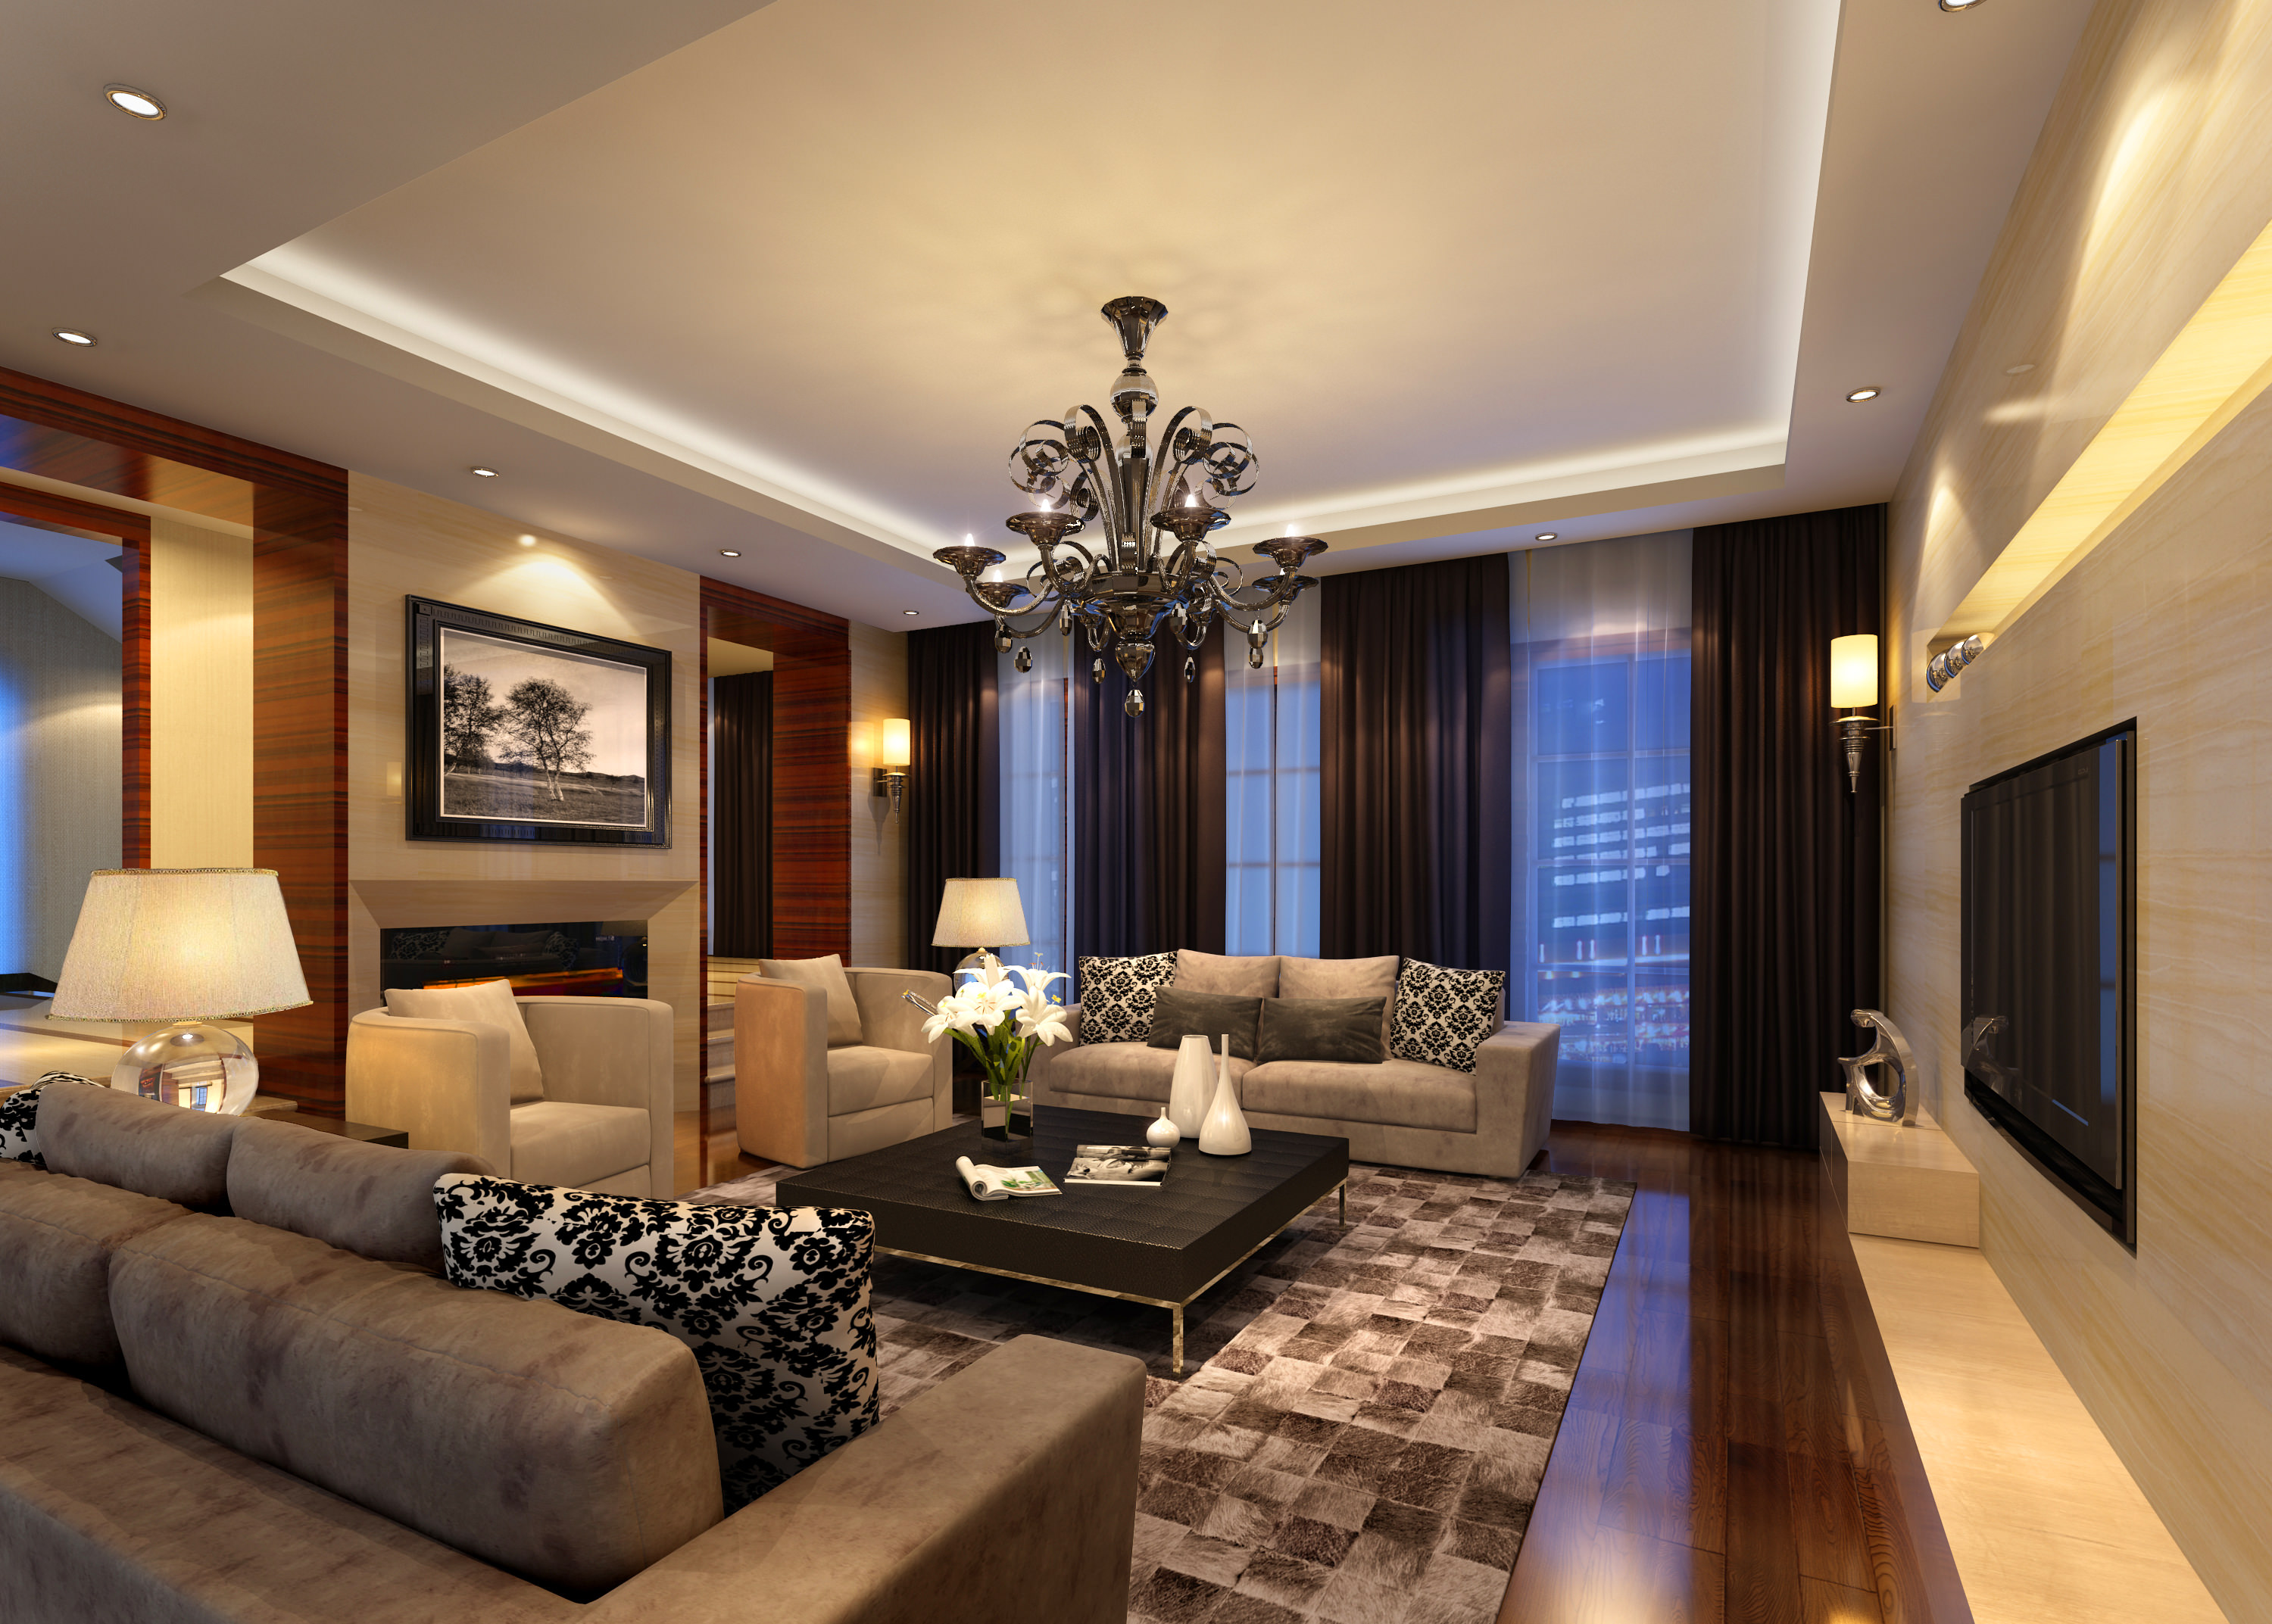 Living room 3d model max for 3d room decoration